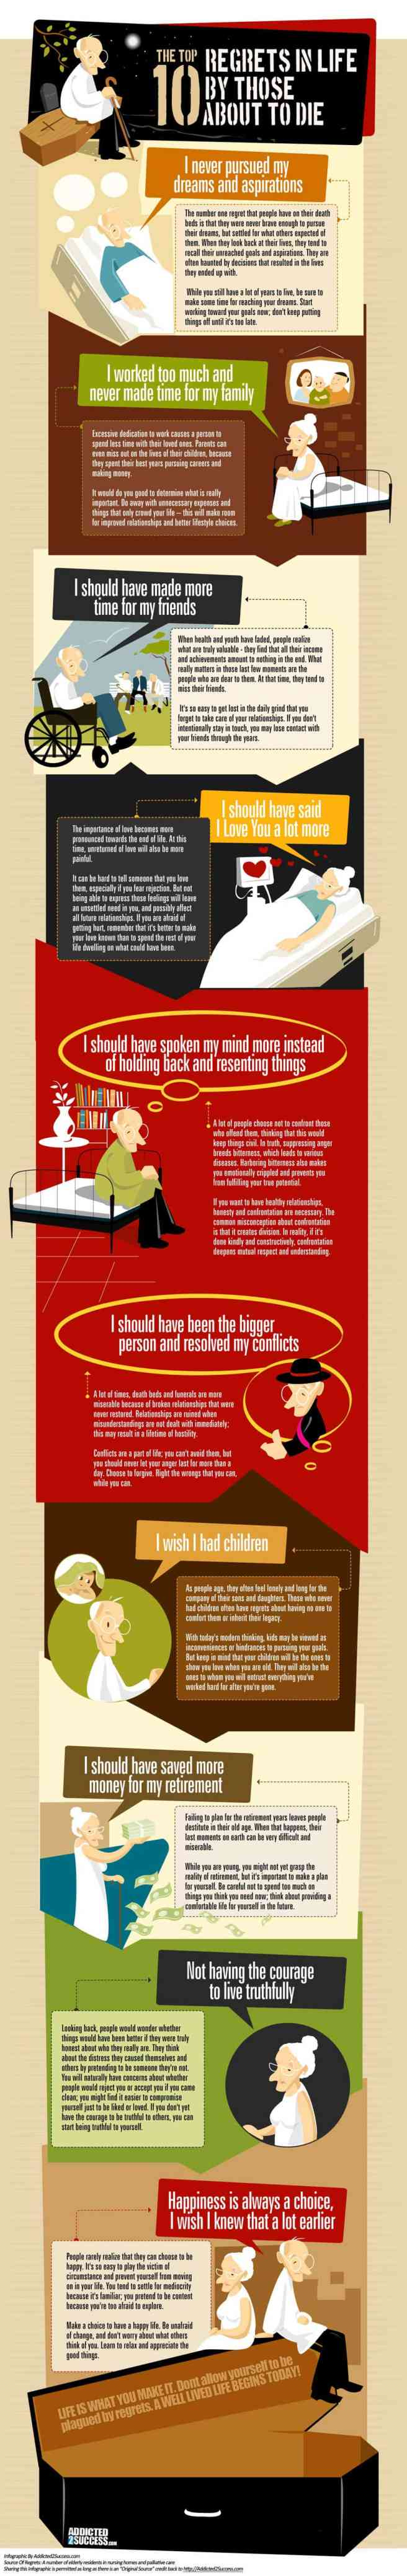 Infographic, regrets before dying, top regrets in life, about to die, addicted2success,motivationgrid, dead, regrets, dying regrets